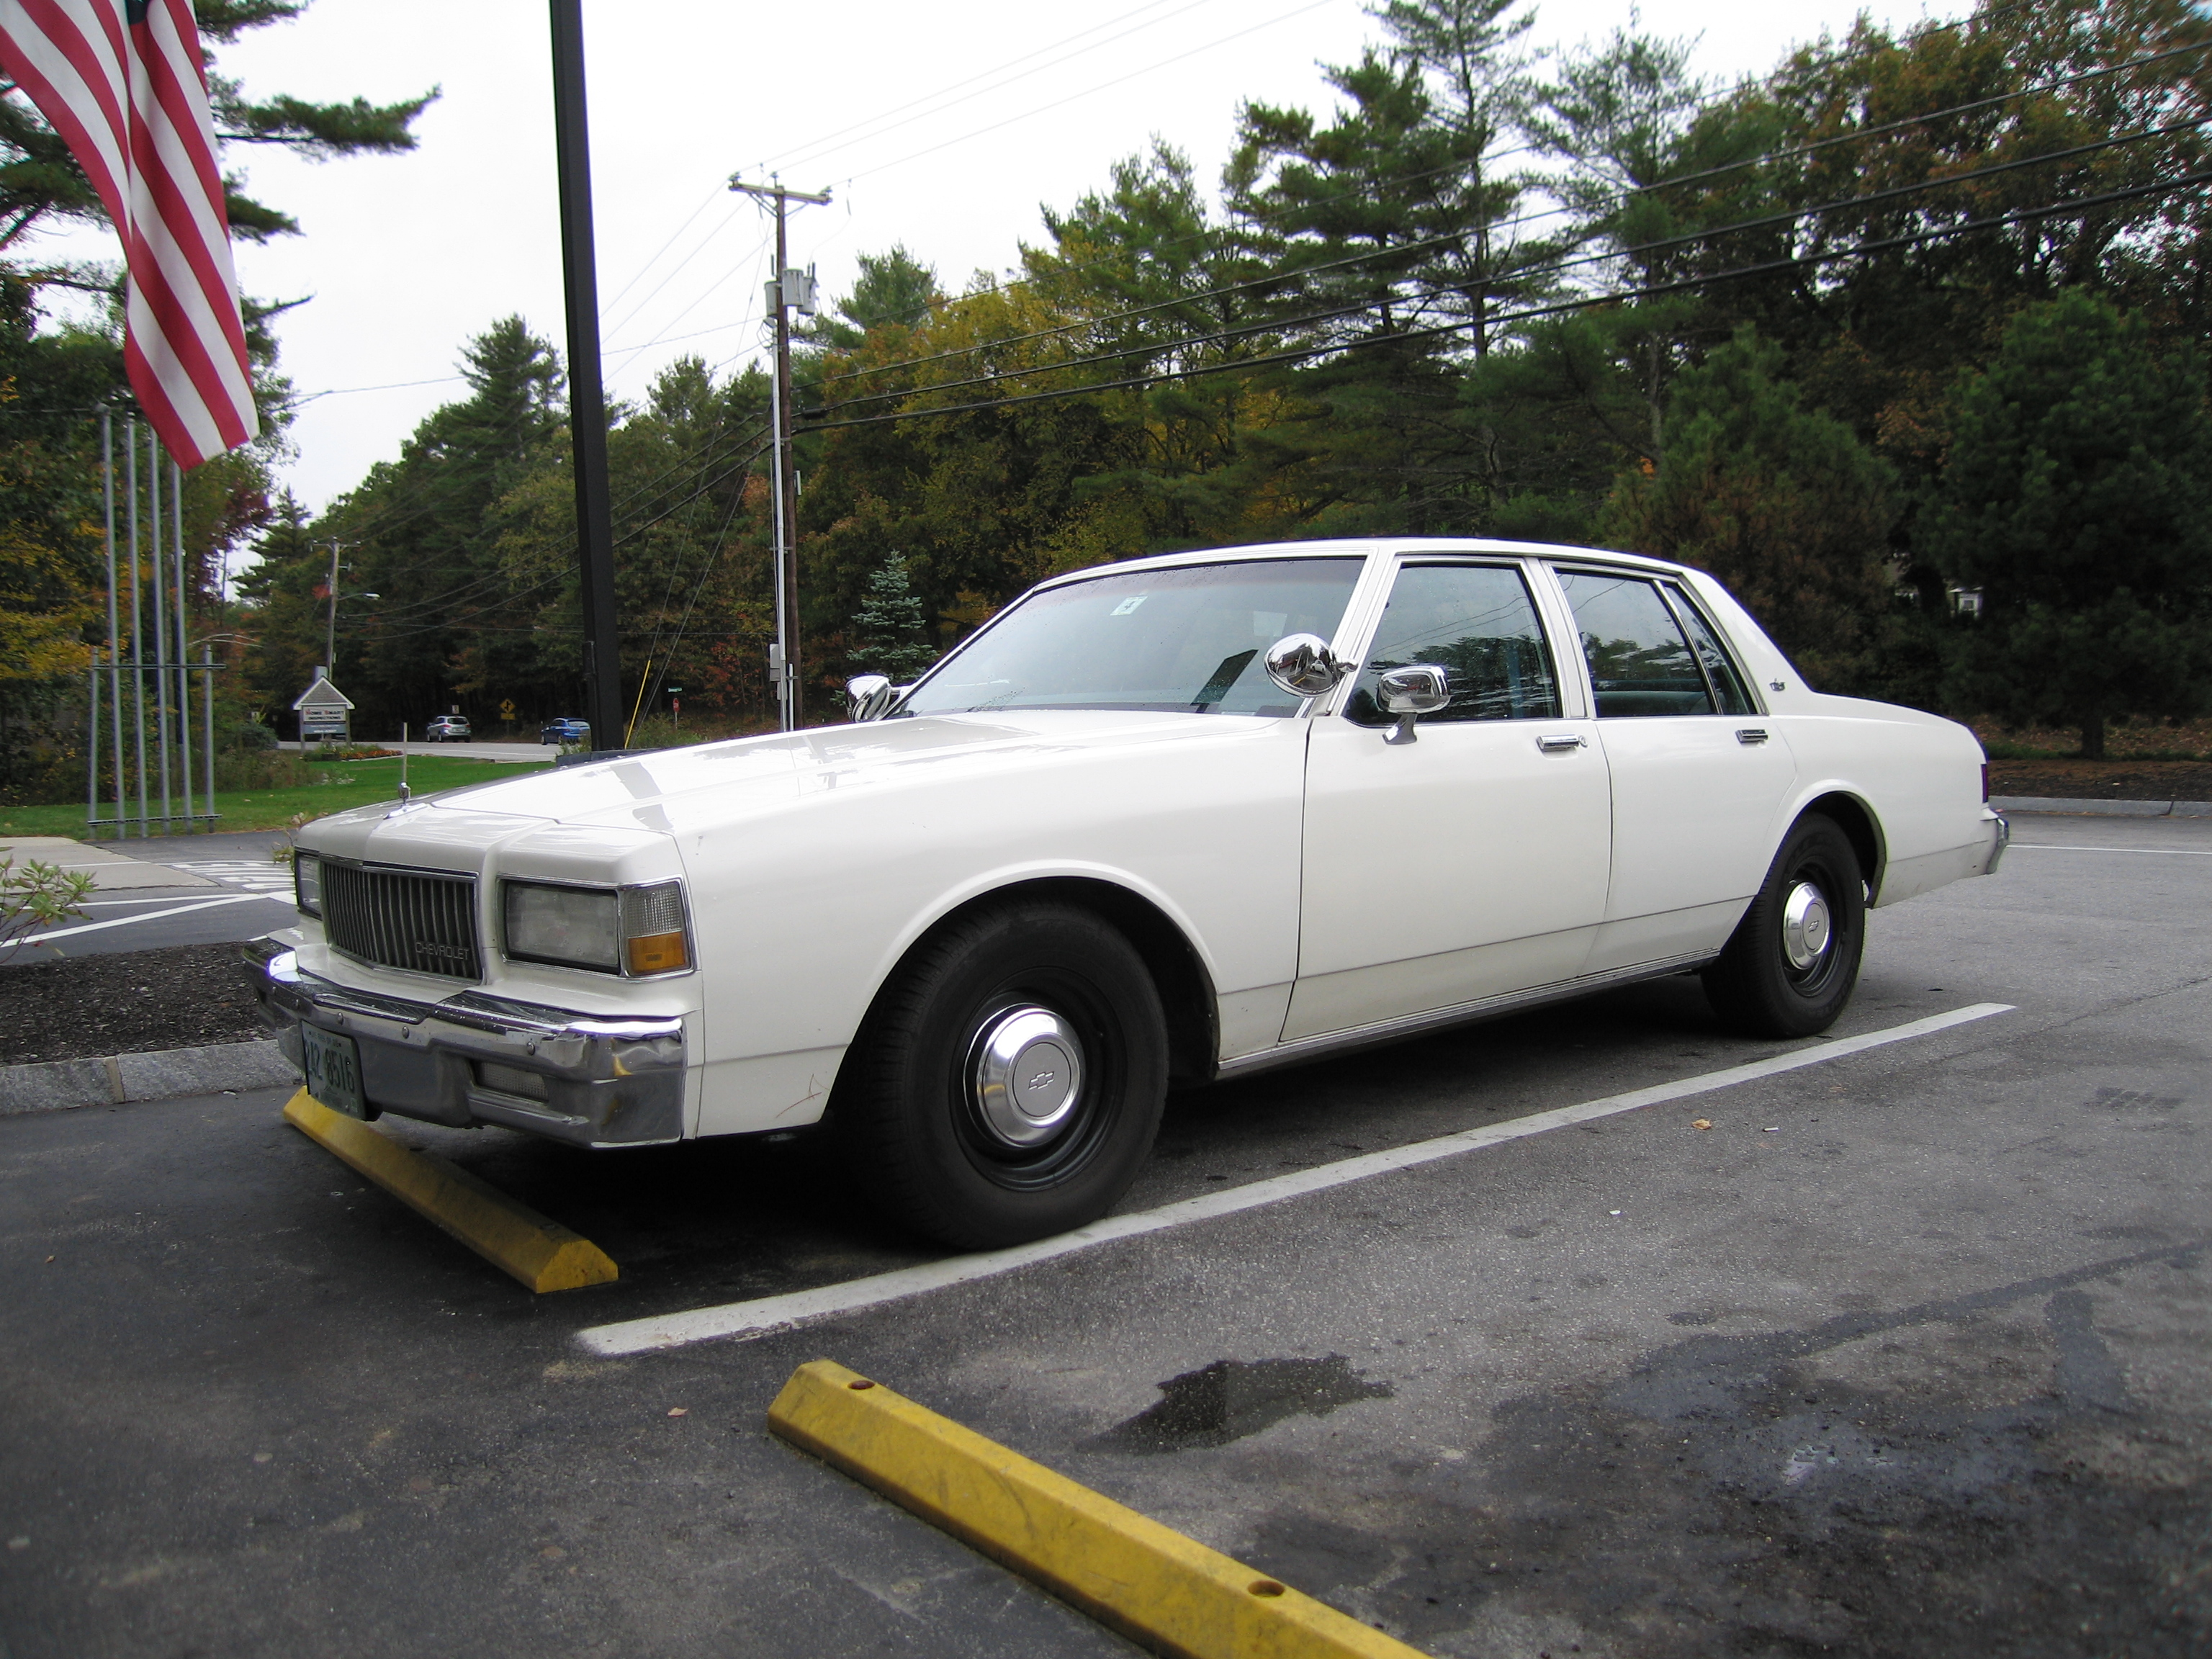 coal 1990 chevrolet caprice iraqi 9c1 how gm canada s skunkworks and saddam hussein enriched and saved my life curbside classic coal 1990 chevrolet caprice iraqi 9c1